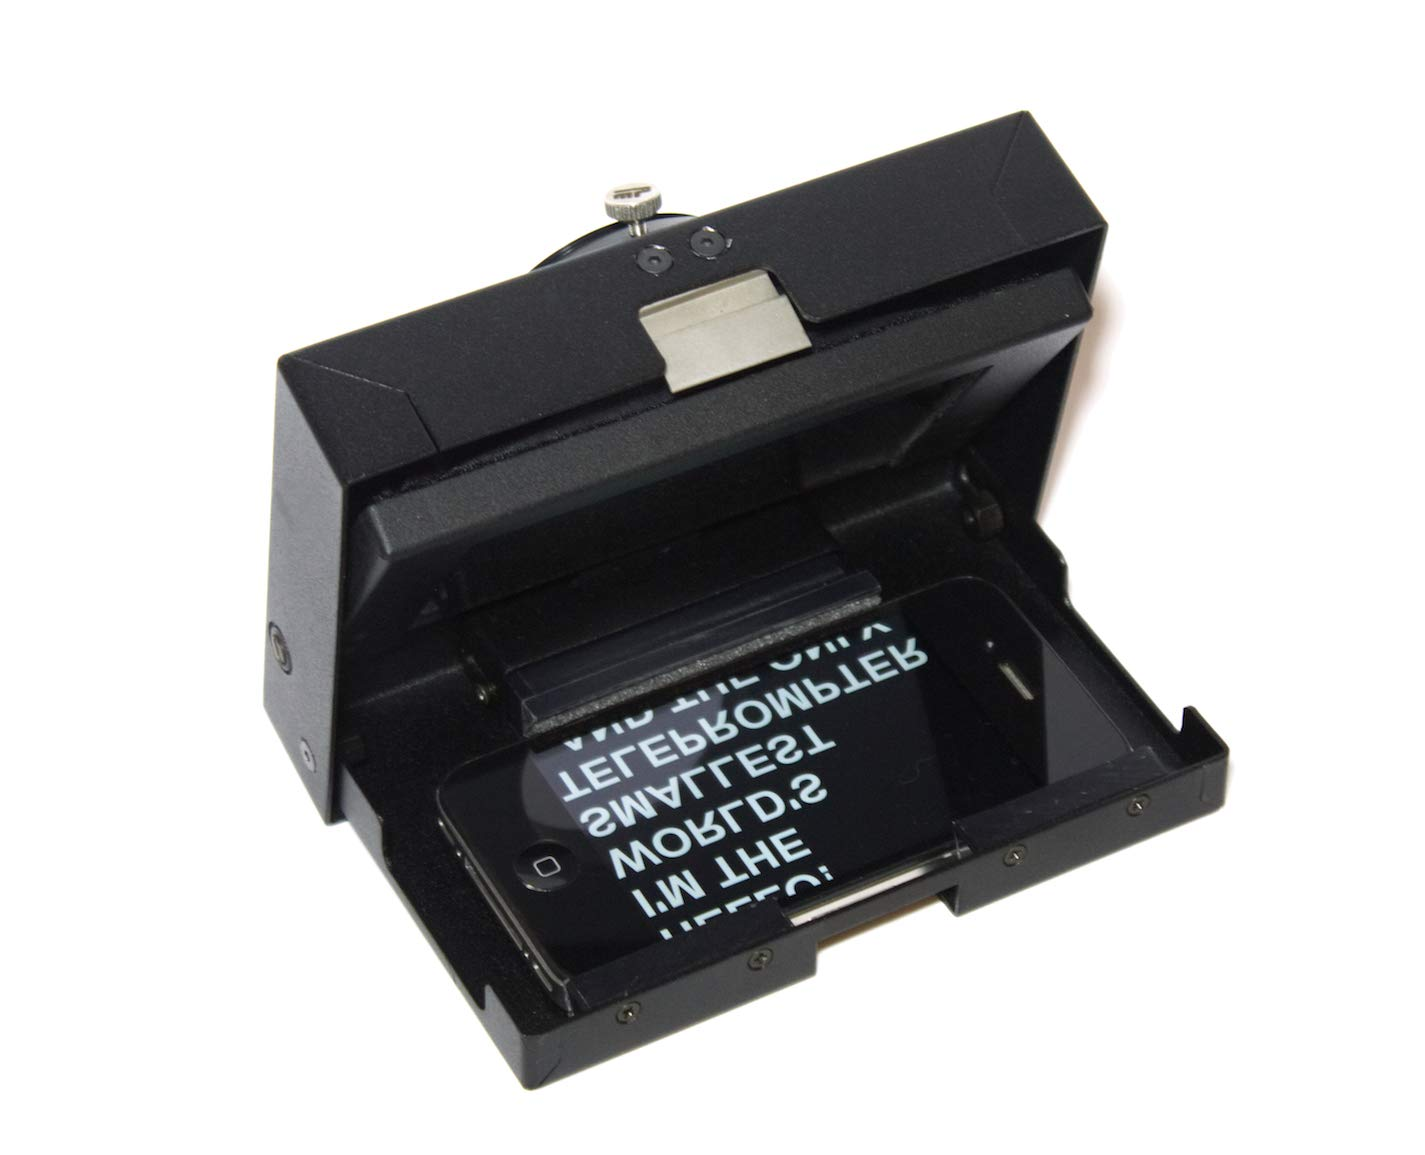 MicroPrompter - World's Smallest Professional Portable Teleprompter for Recording Videos on Your Smartphone, Camcorder or Small DSLR by MicroPrompter (Image #4)